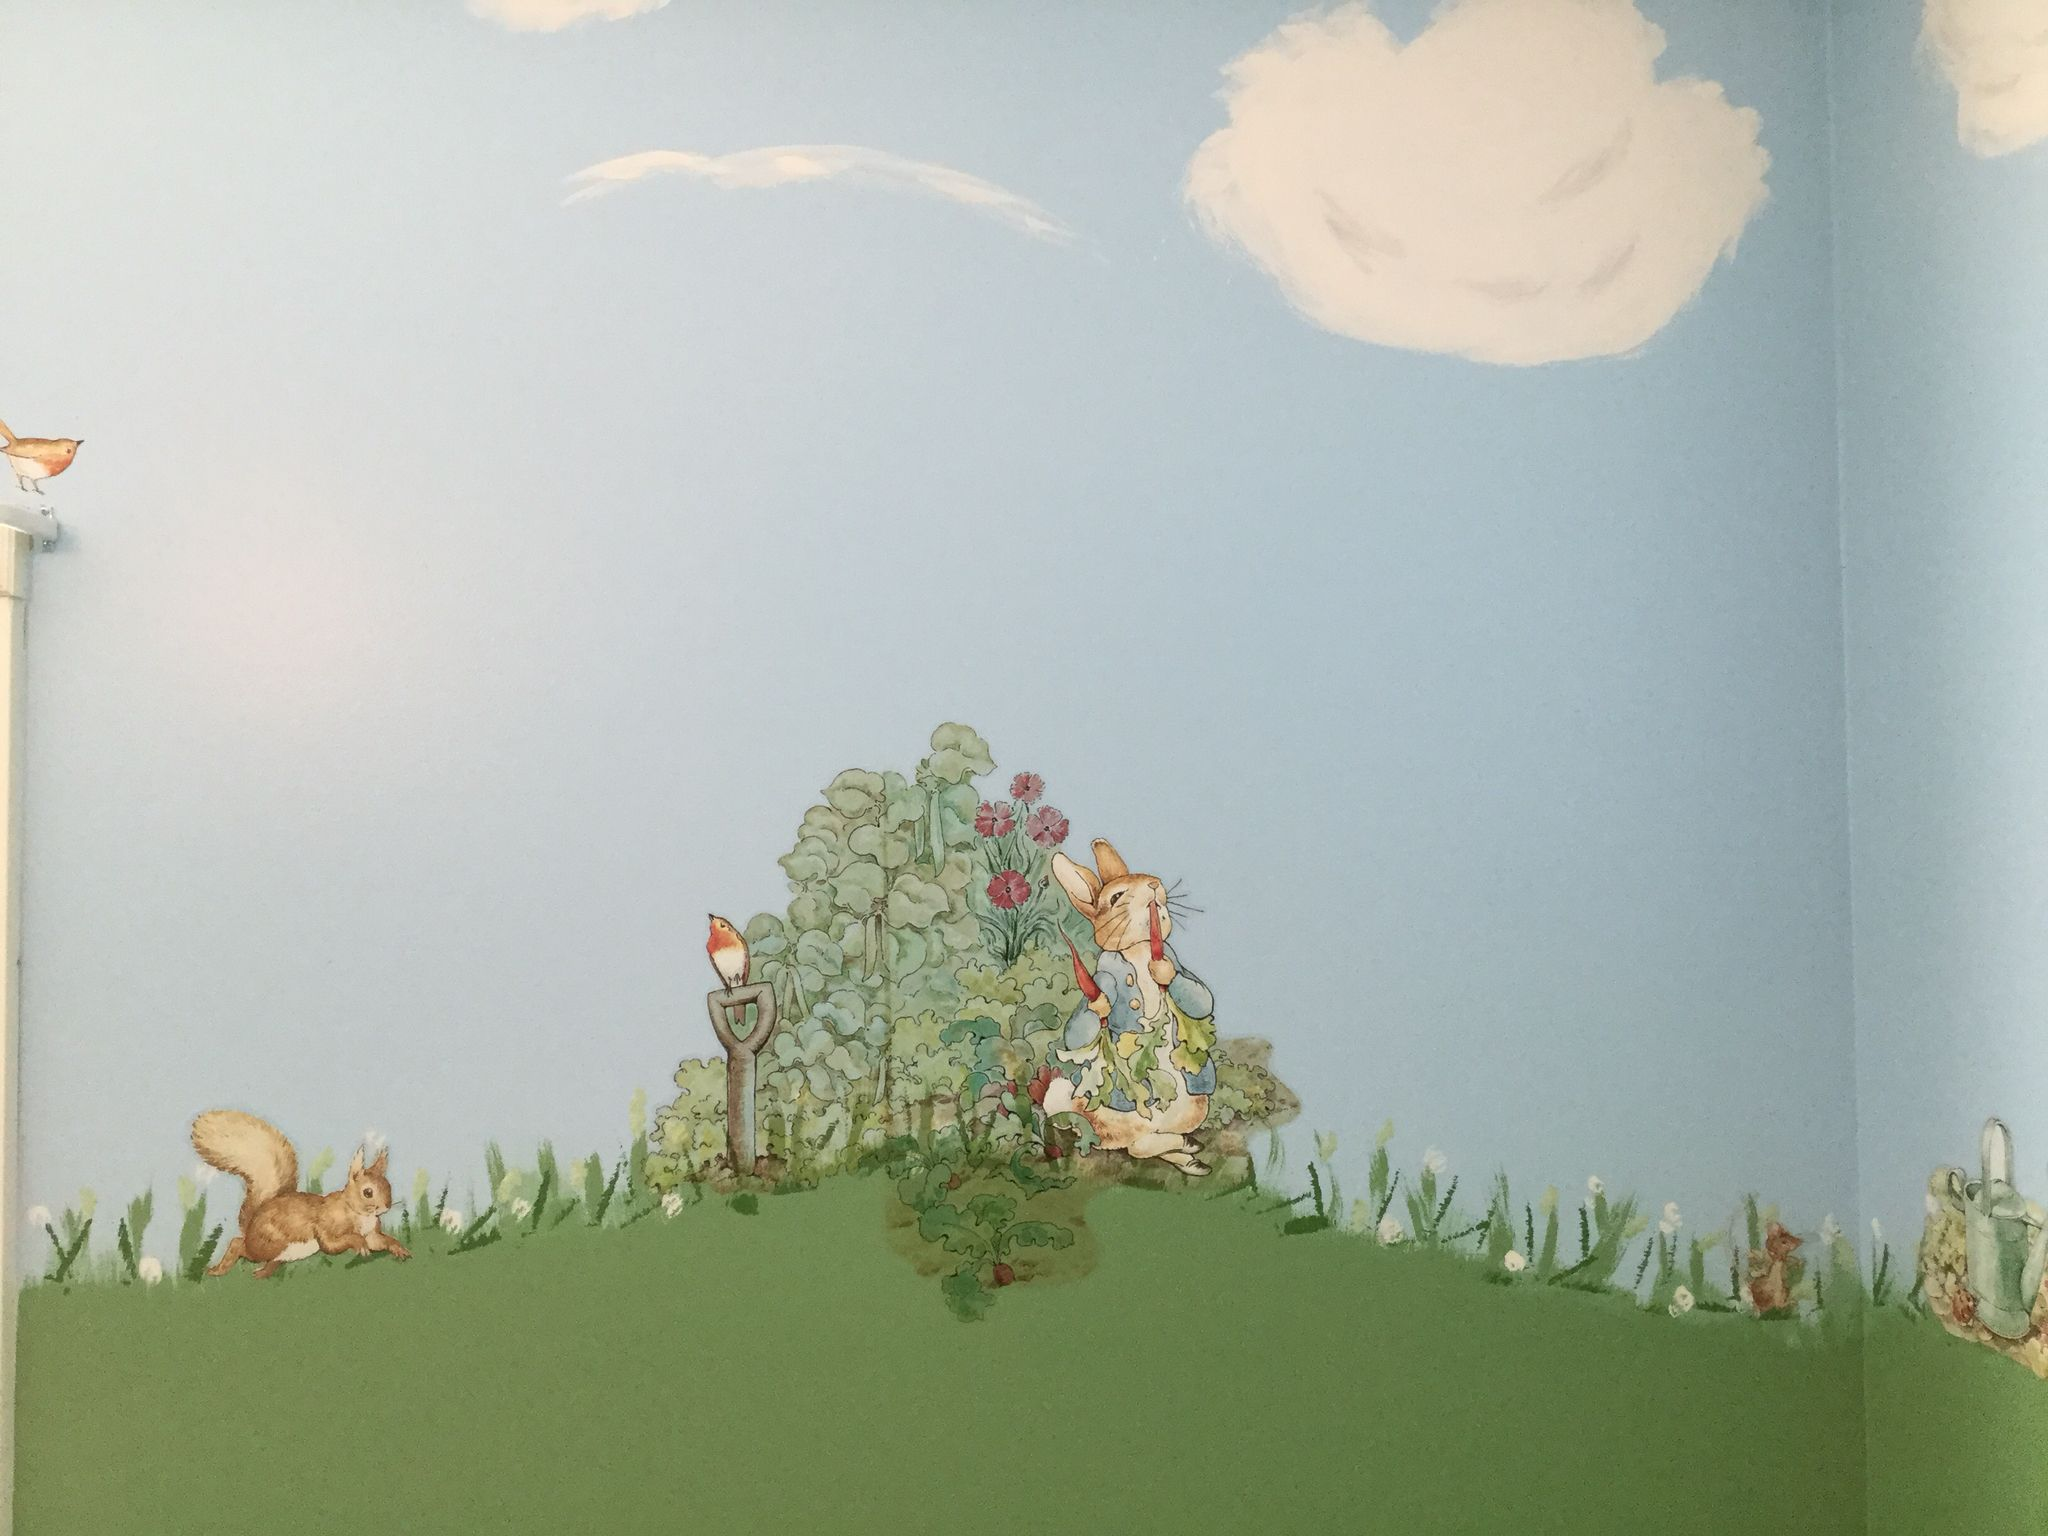 Put The Beatrix Potter Decals On My Painted Scenery Walls Love - How to put a decal on my wall